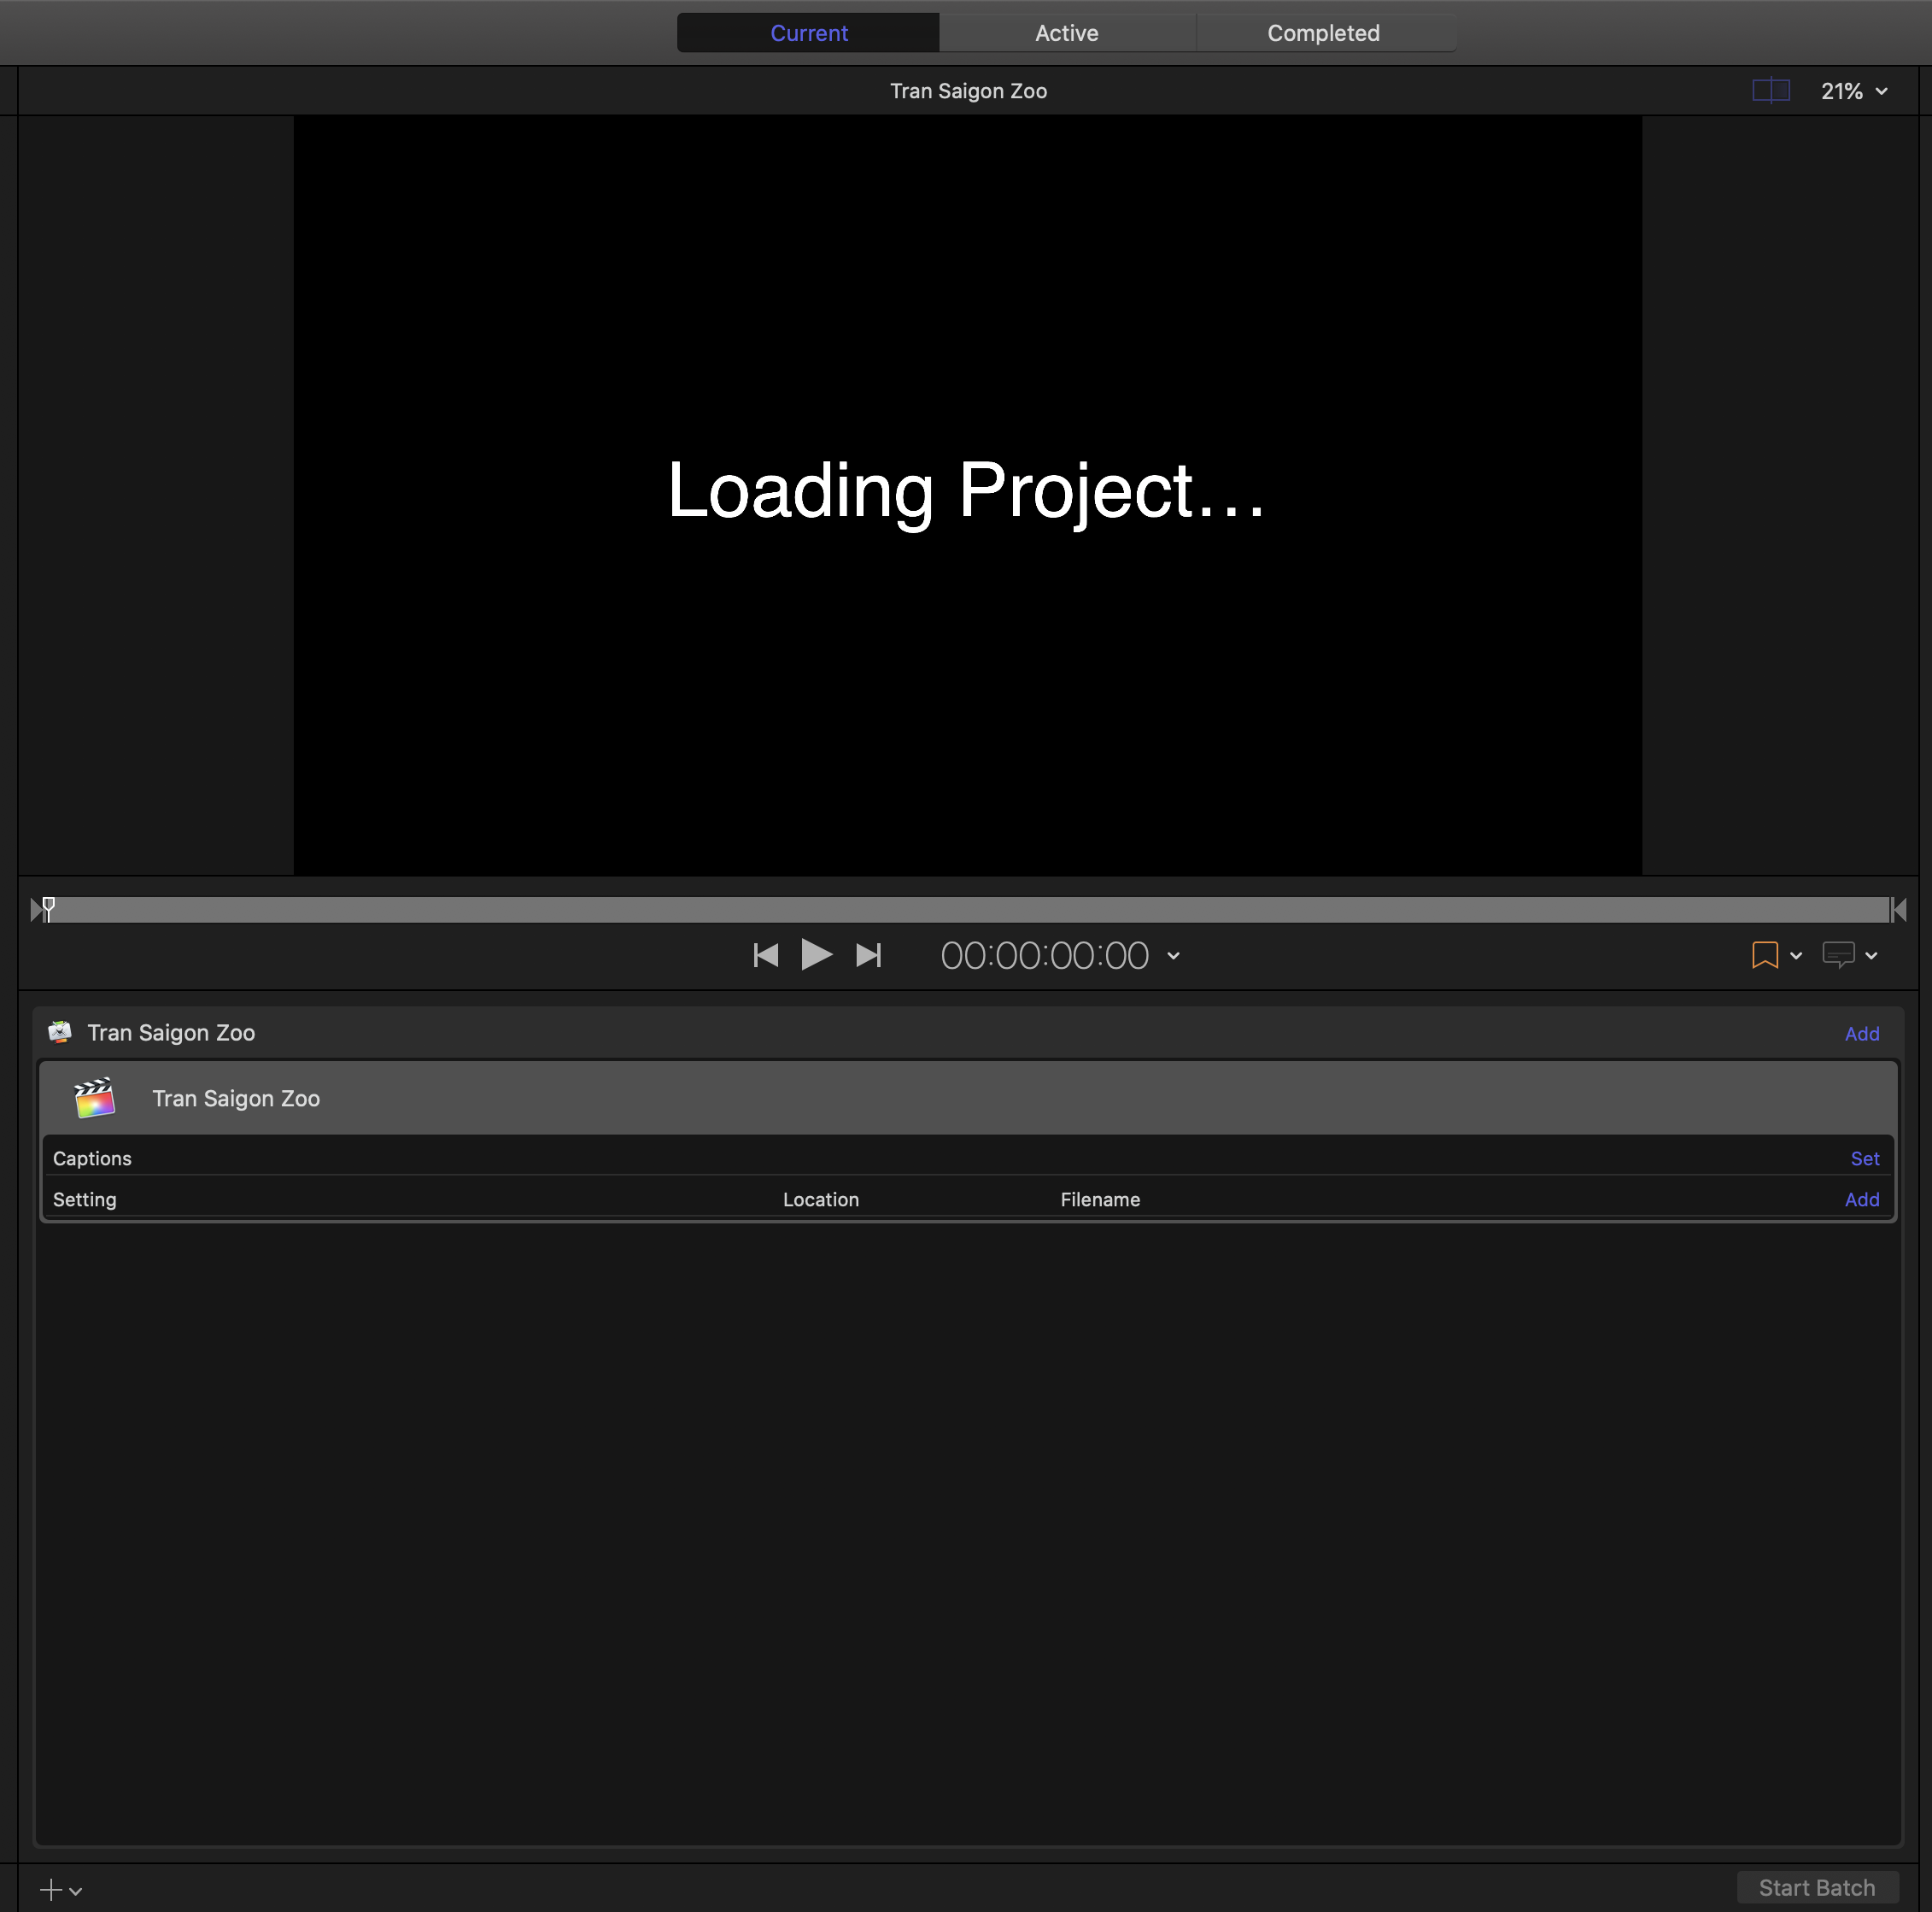 23. Wait for project to finish loading.